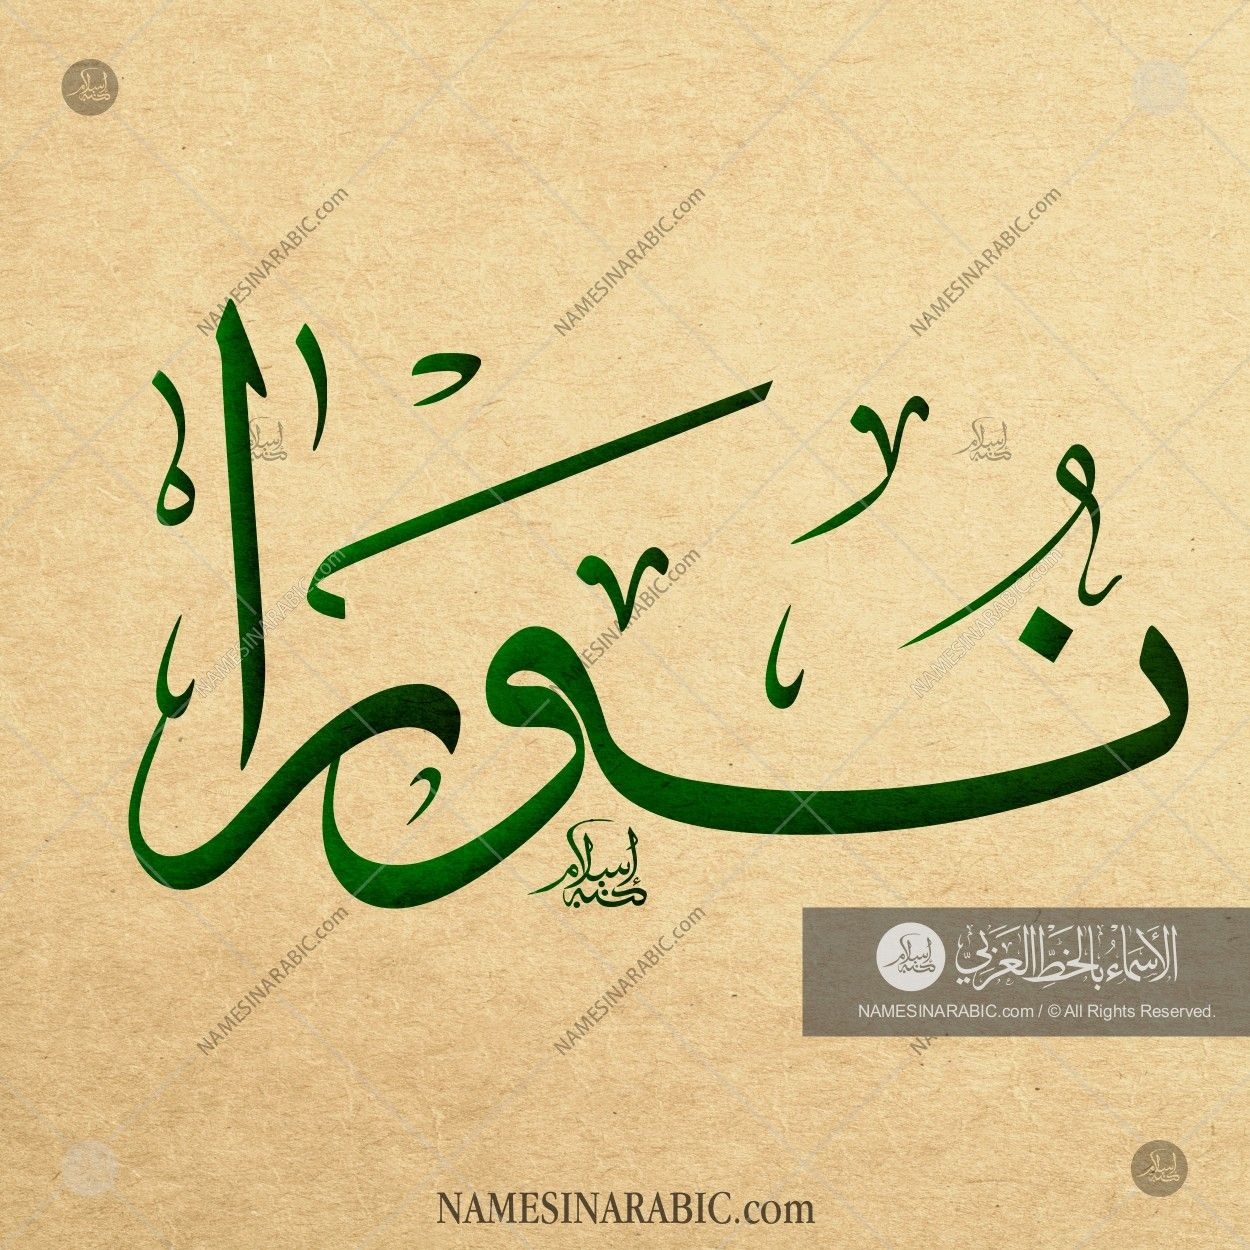 Noora نورا Names In Arabic Calligraphy Name 2804 Calligraphy Name Calligraphy Arabic Art